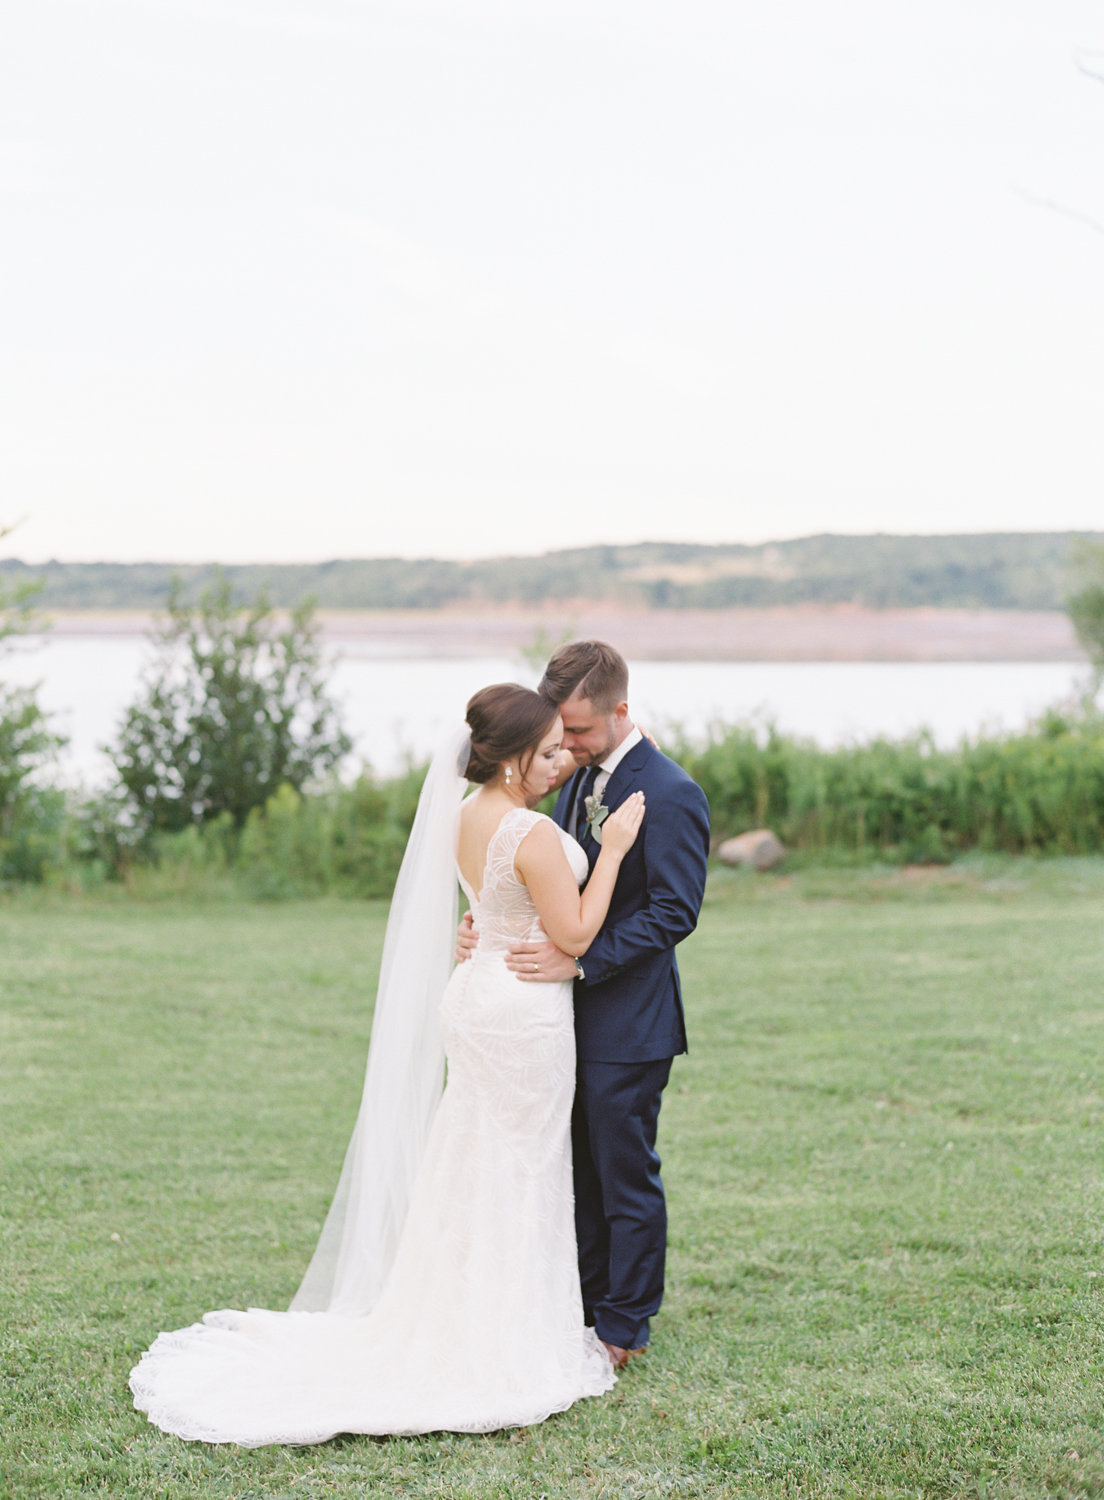 Jacqueline Anne Photography - Nova Scotia Backyard Wedding-87